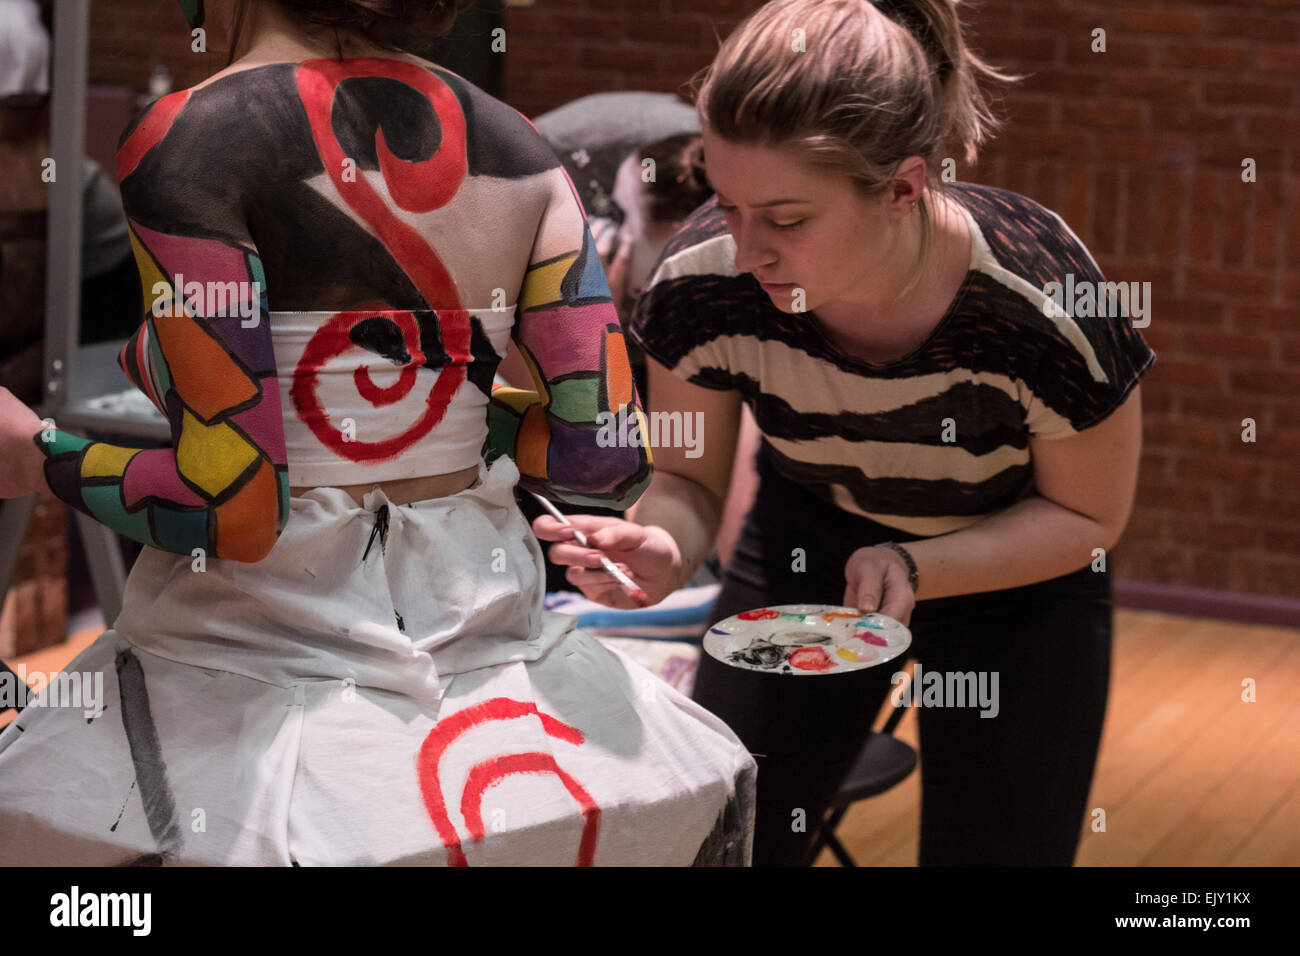 Woman putting final touches of body paint onto a female model in costume and face paint. - Stock Image